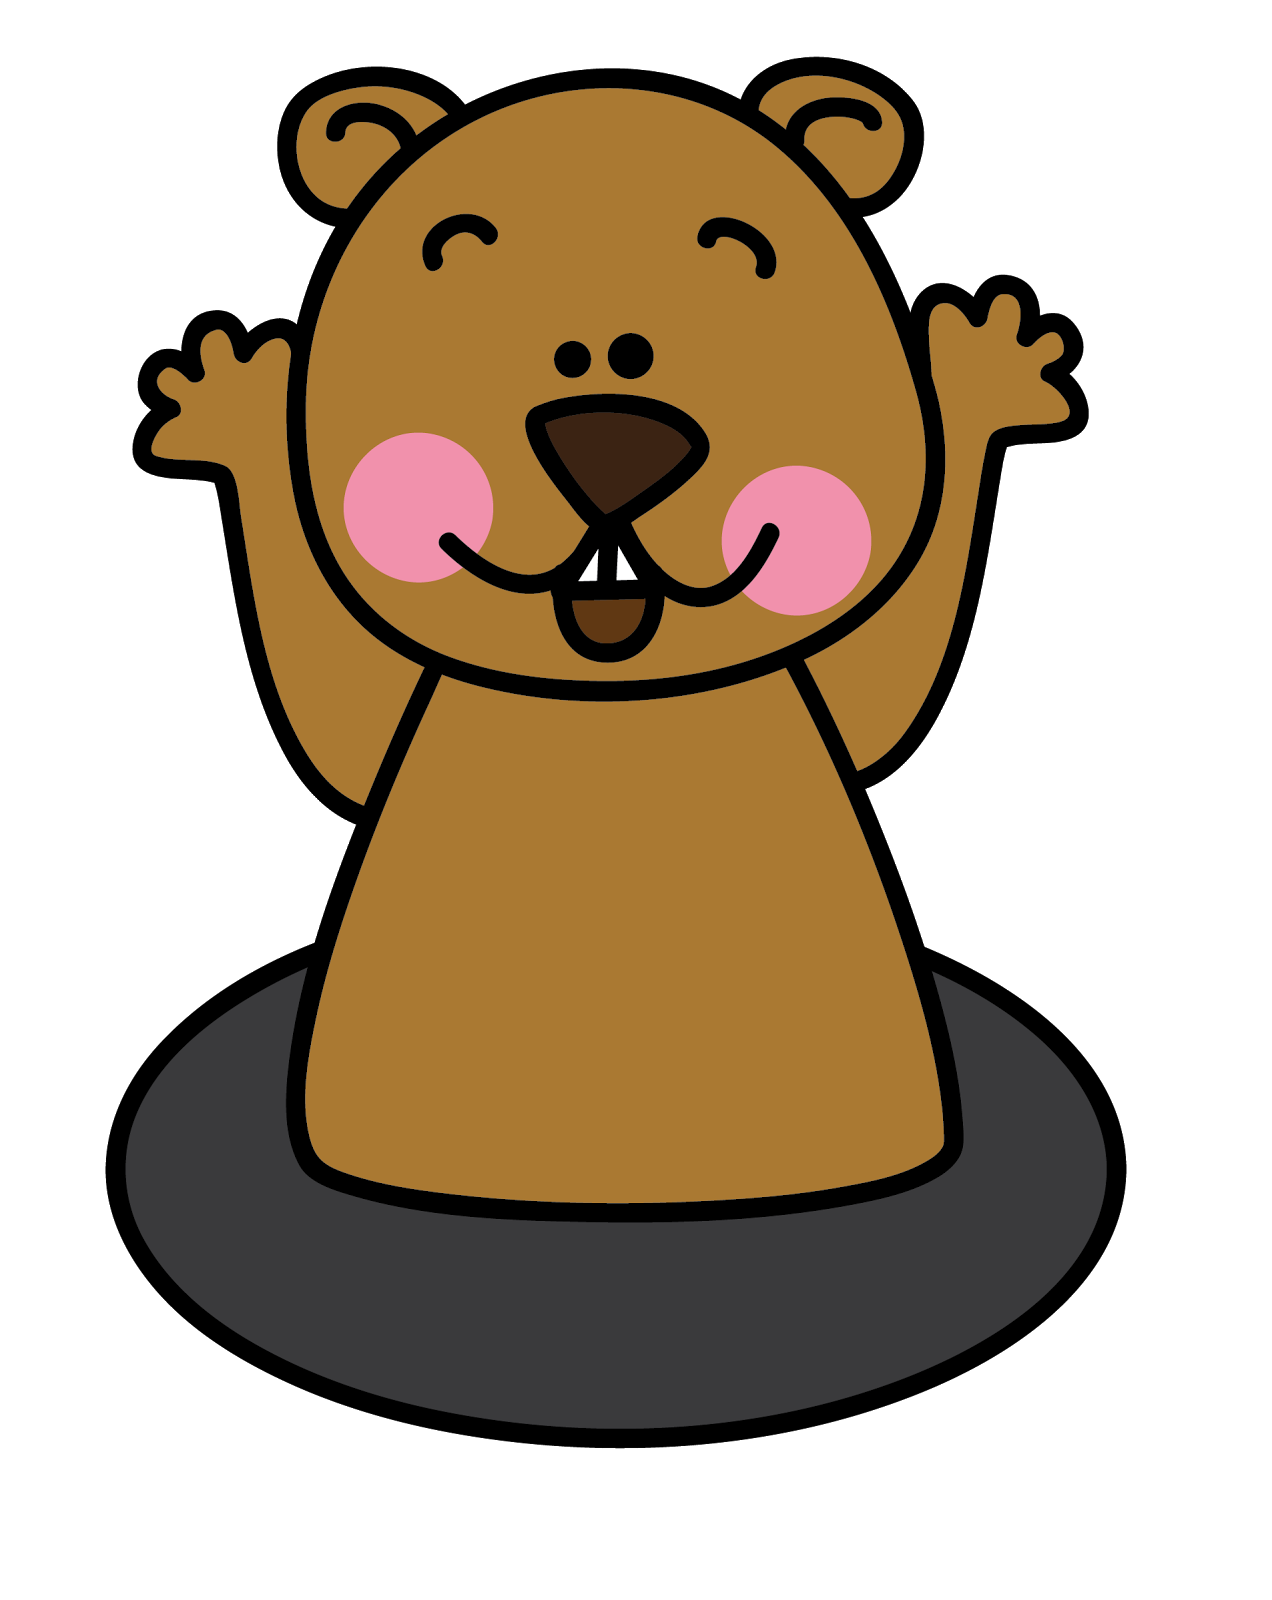 Groundhog Clipart.